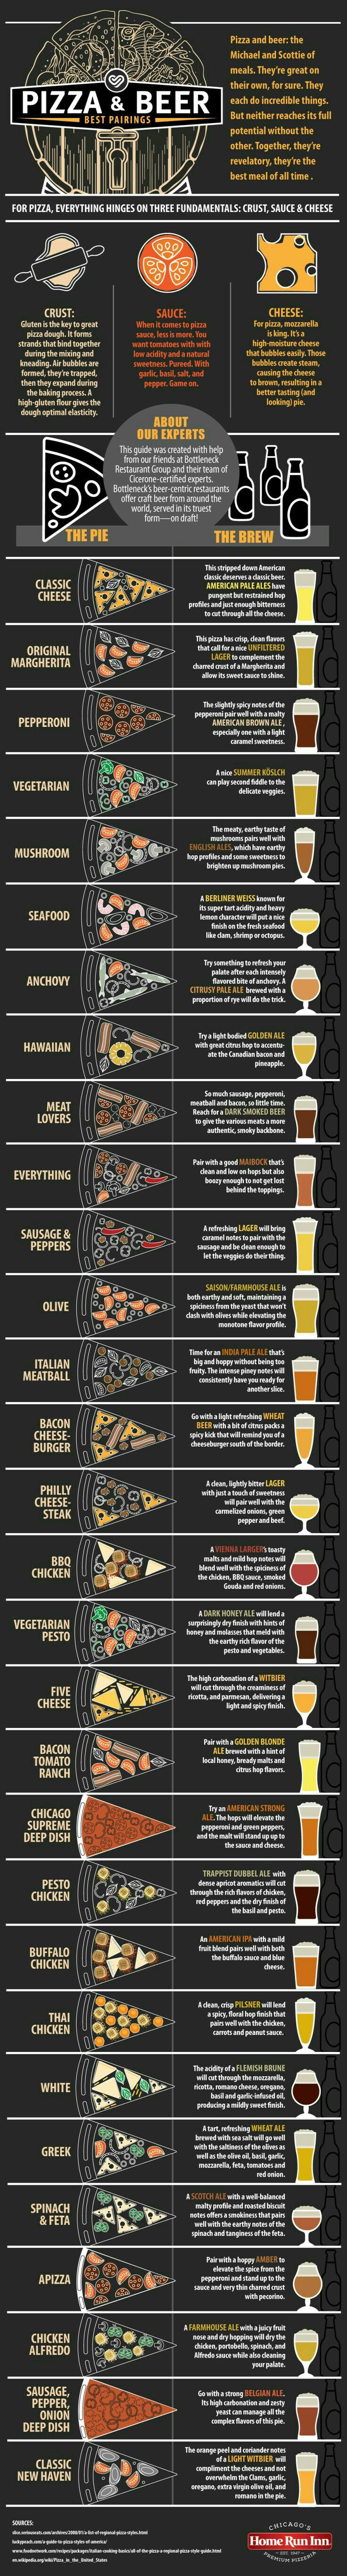 Pizza and beer pairings  the pairings for your favorite suds